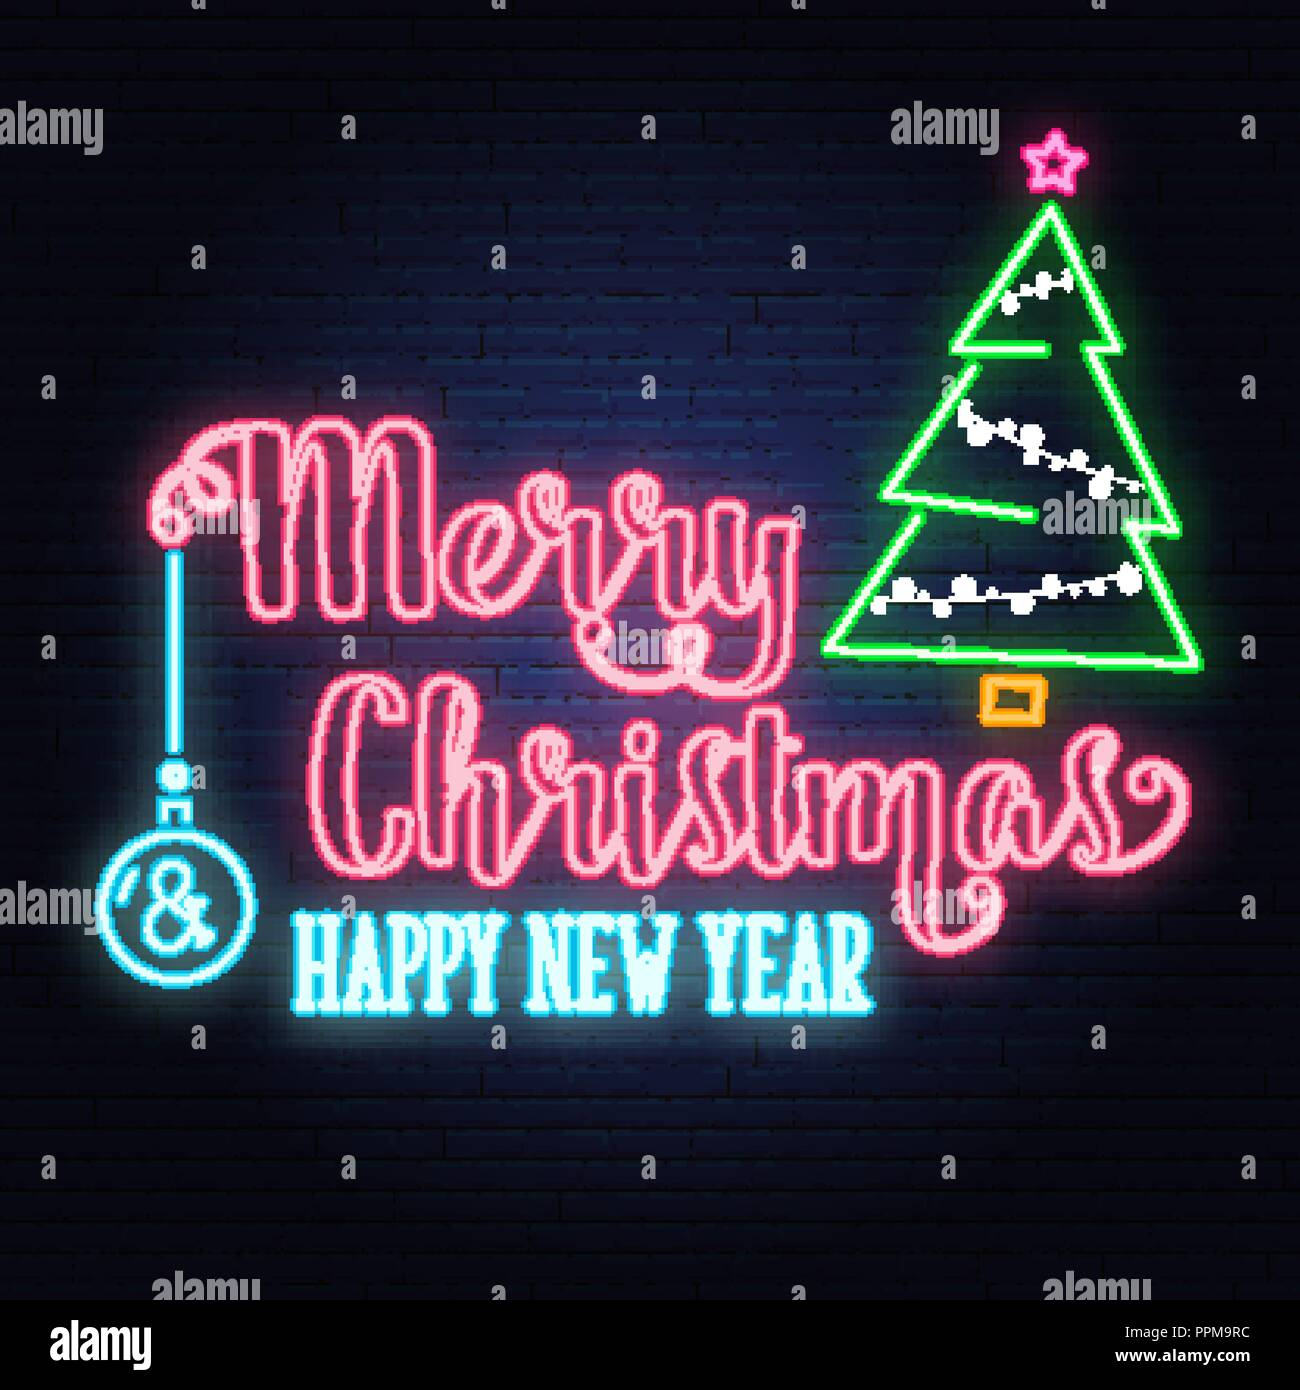 Merry Christmas and Happy New Year neon sign.with Christmas tree ...